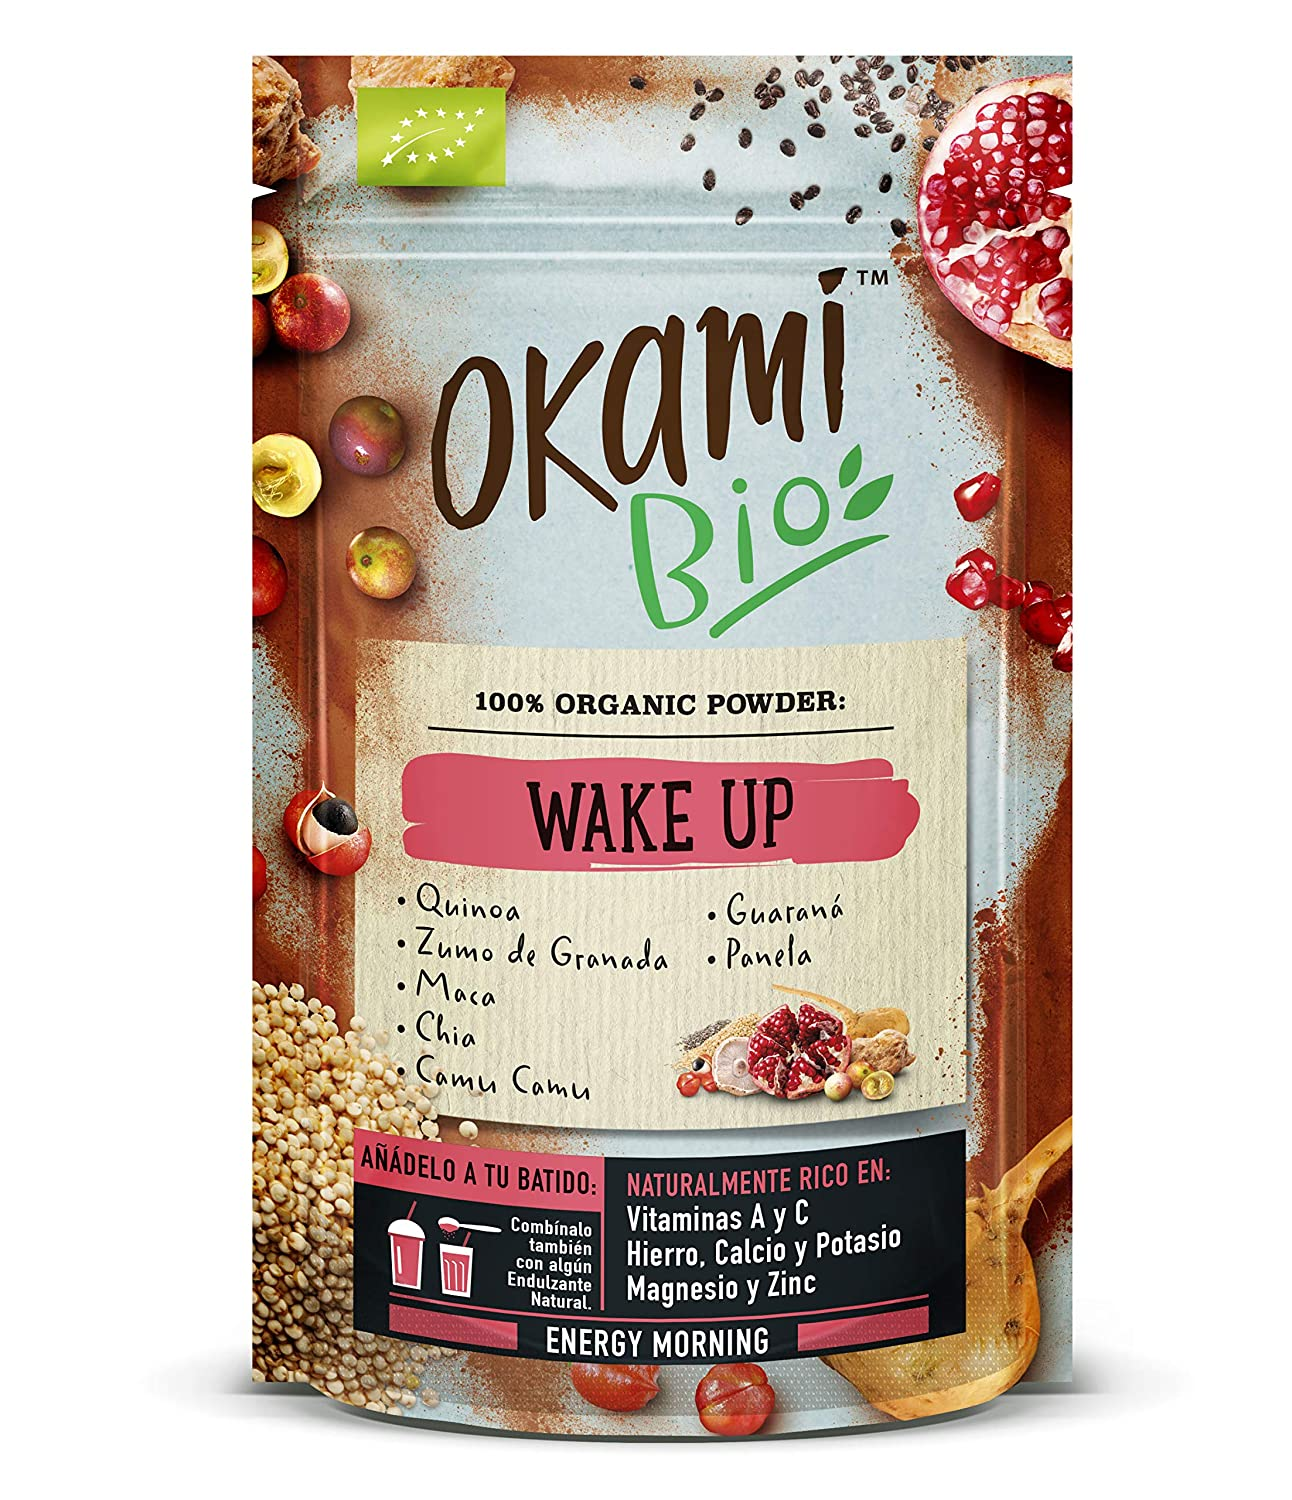 Okami Bio Wake up Superfood Powder Mix 200gr | Mezcla Vegana Orgánica de Quinoa, Granada, Maca, Chia, Camu Camu y Guaraná | Todos los nutrientes ...